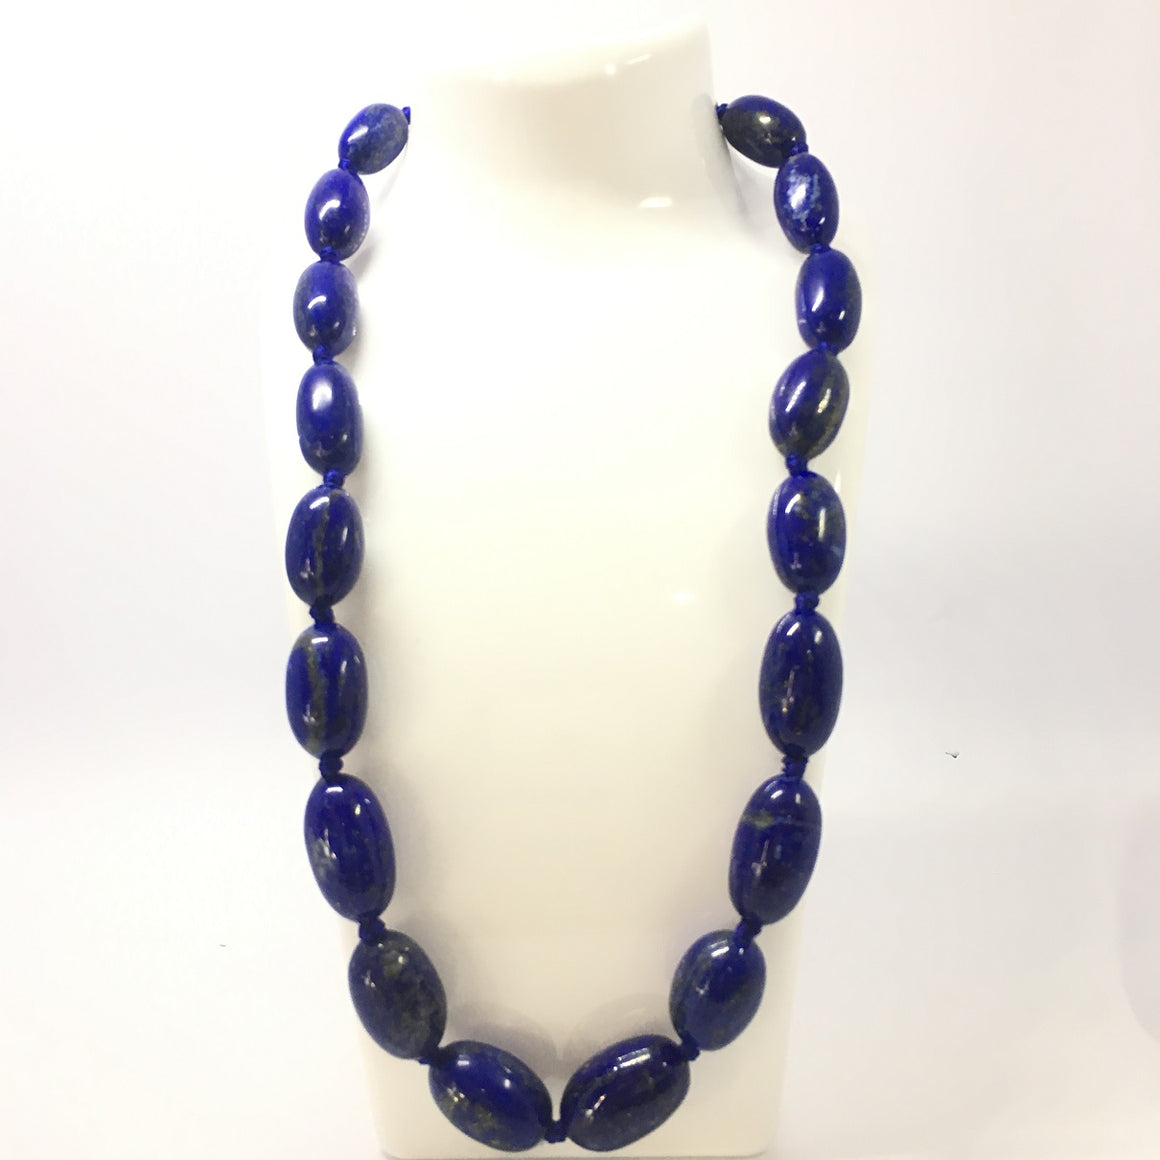 653.5 Carat, 19 Oval Beads Lapis Lazuli Necklace with Metal Lock